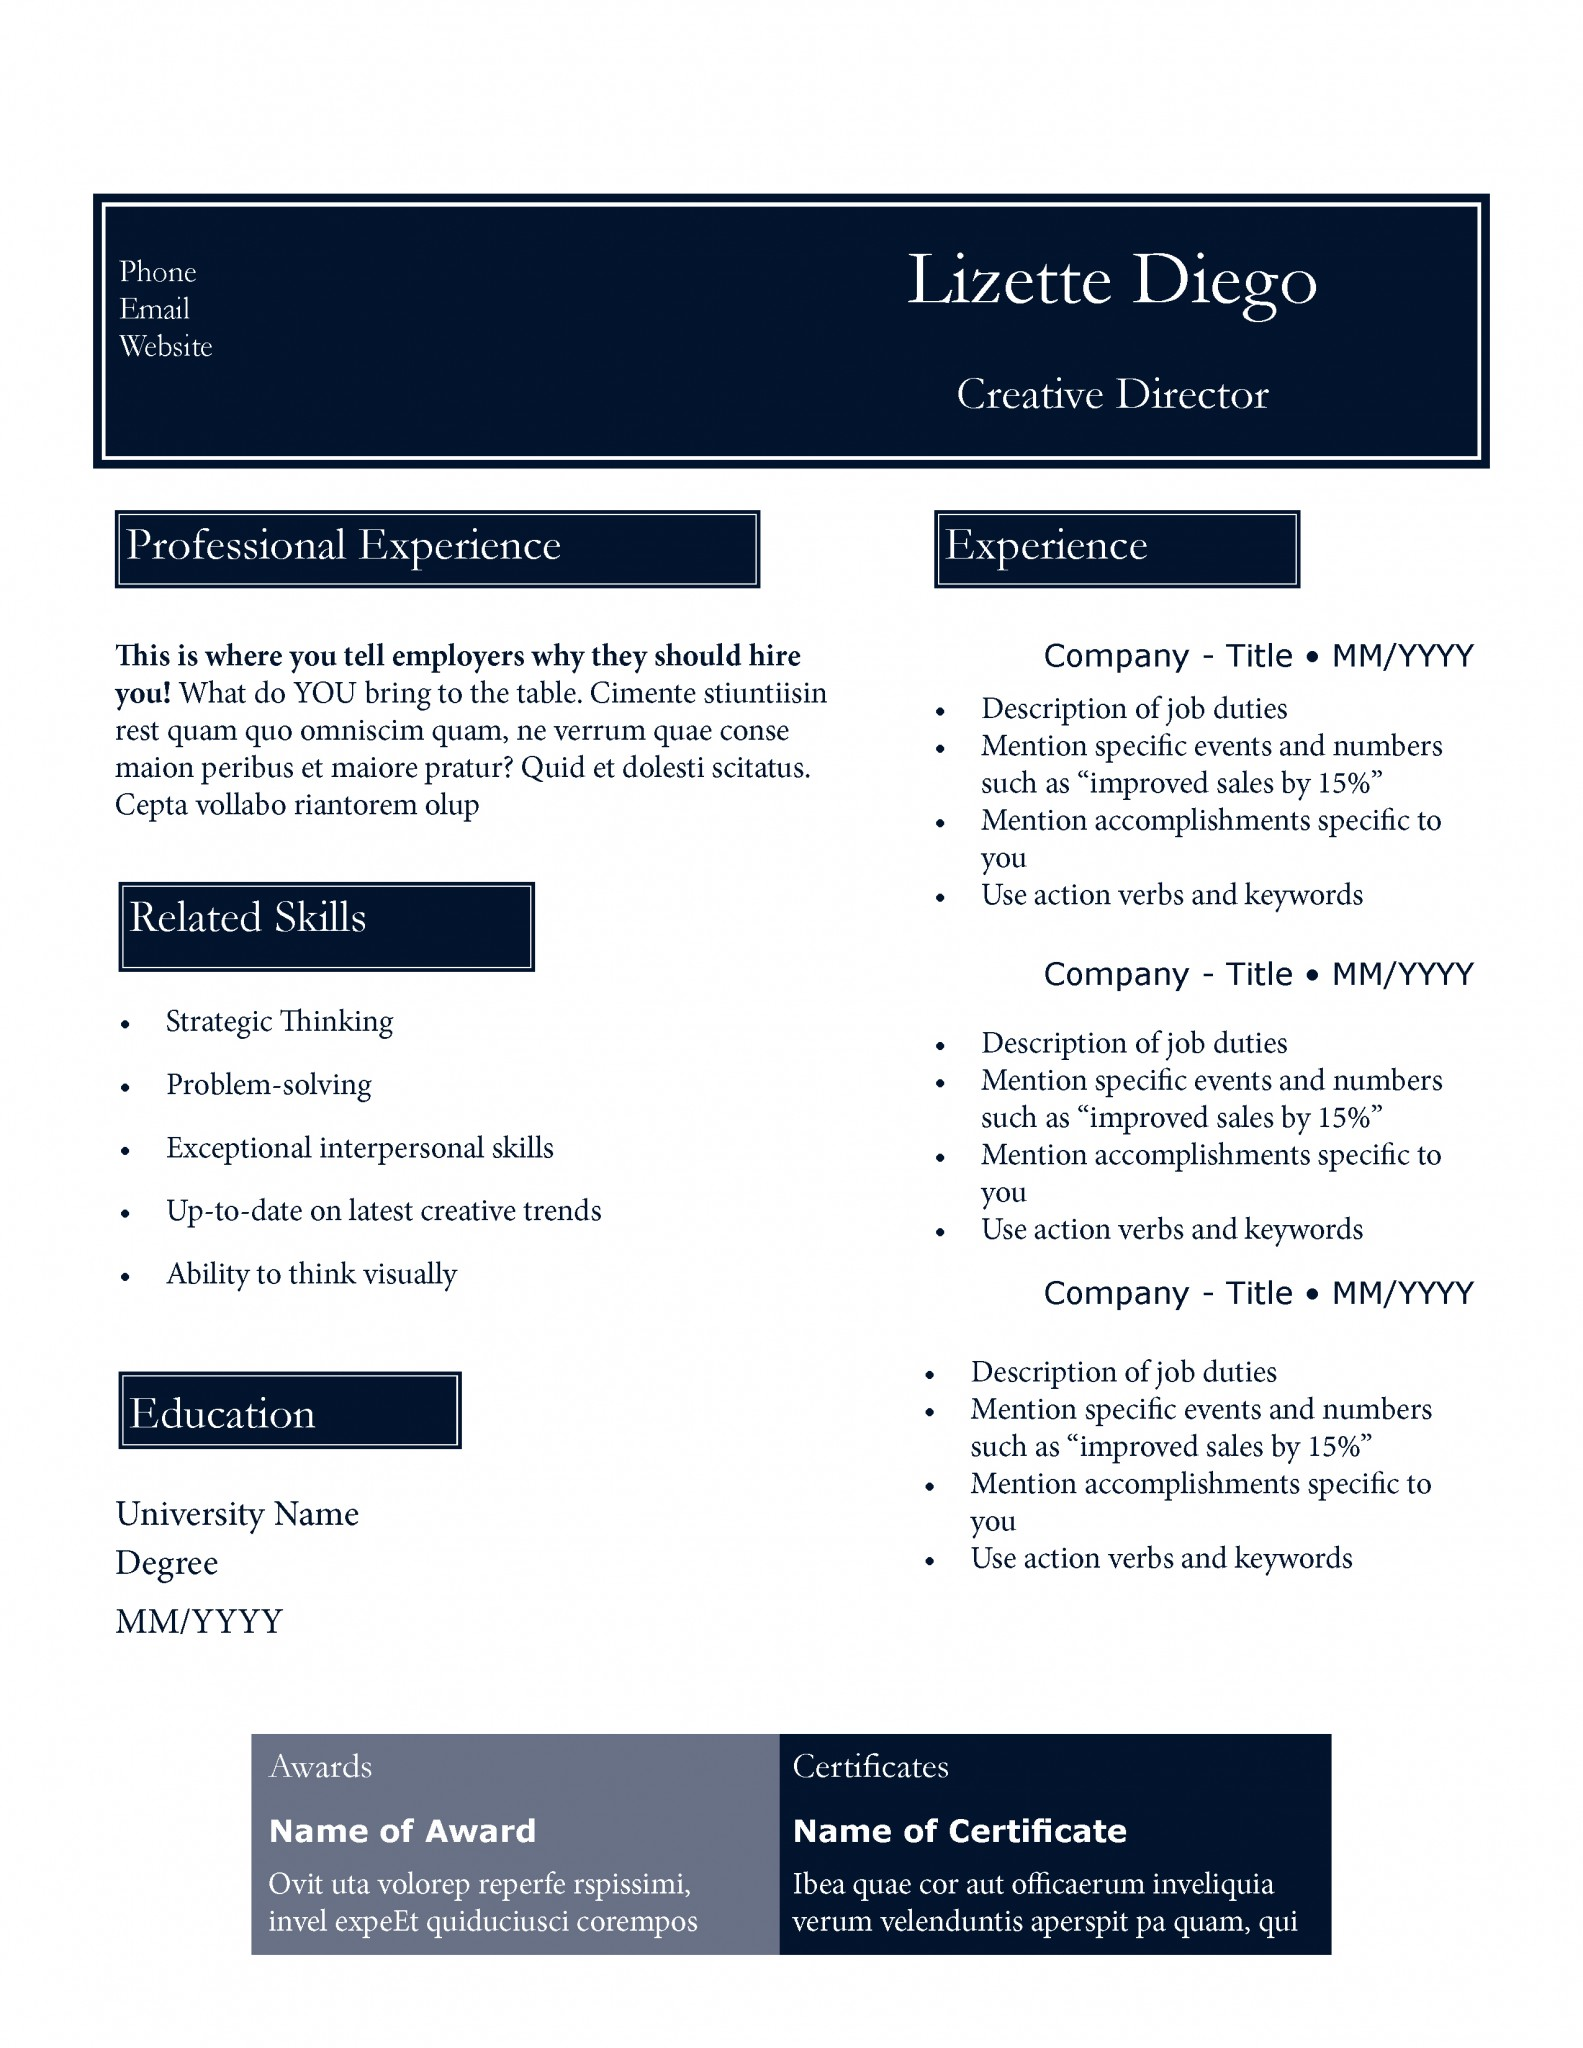 New Slick Resume Templates Pack - The Grid System